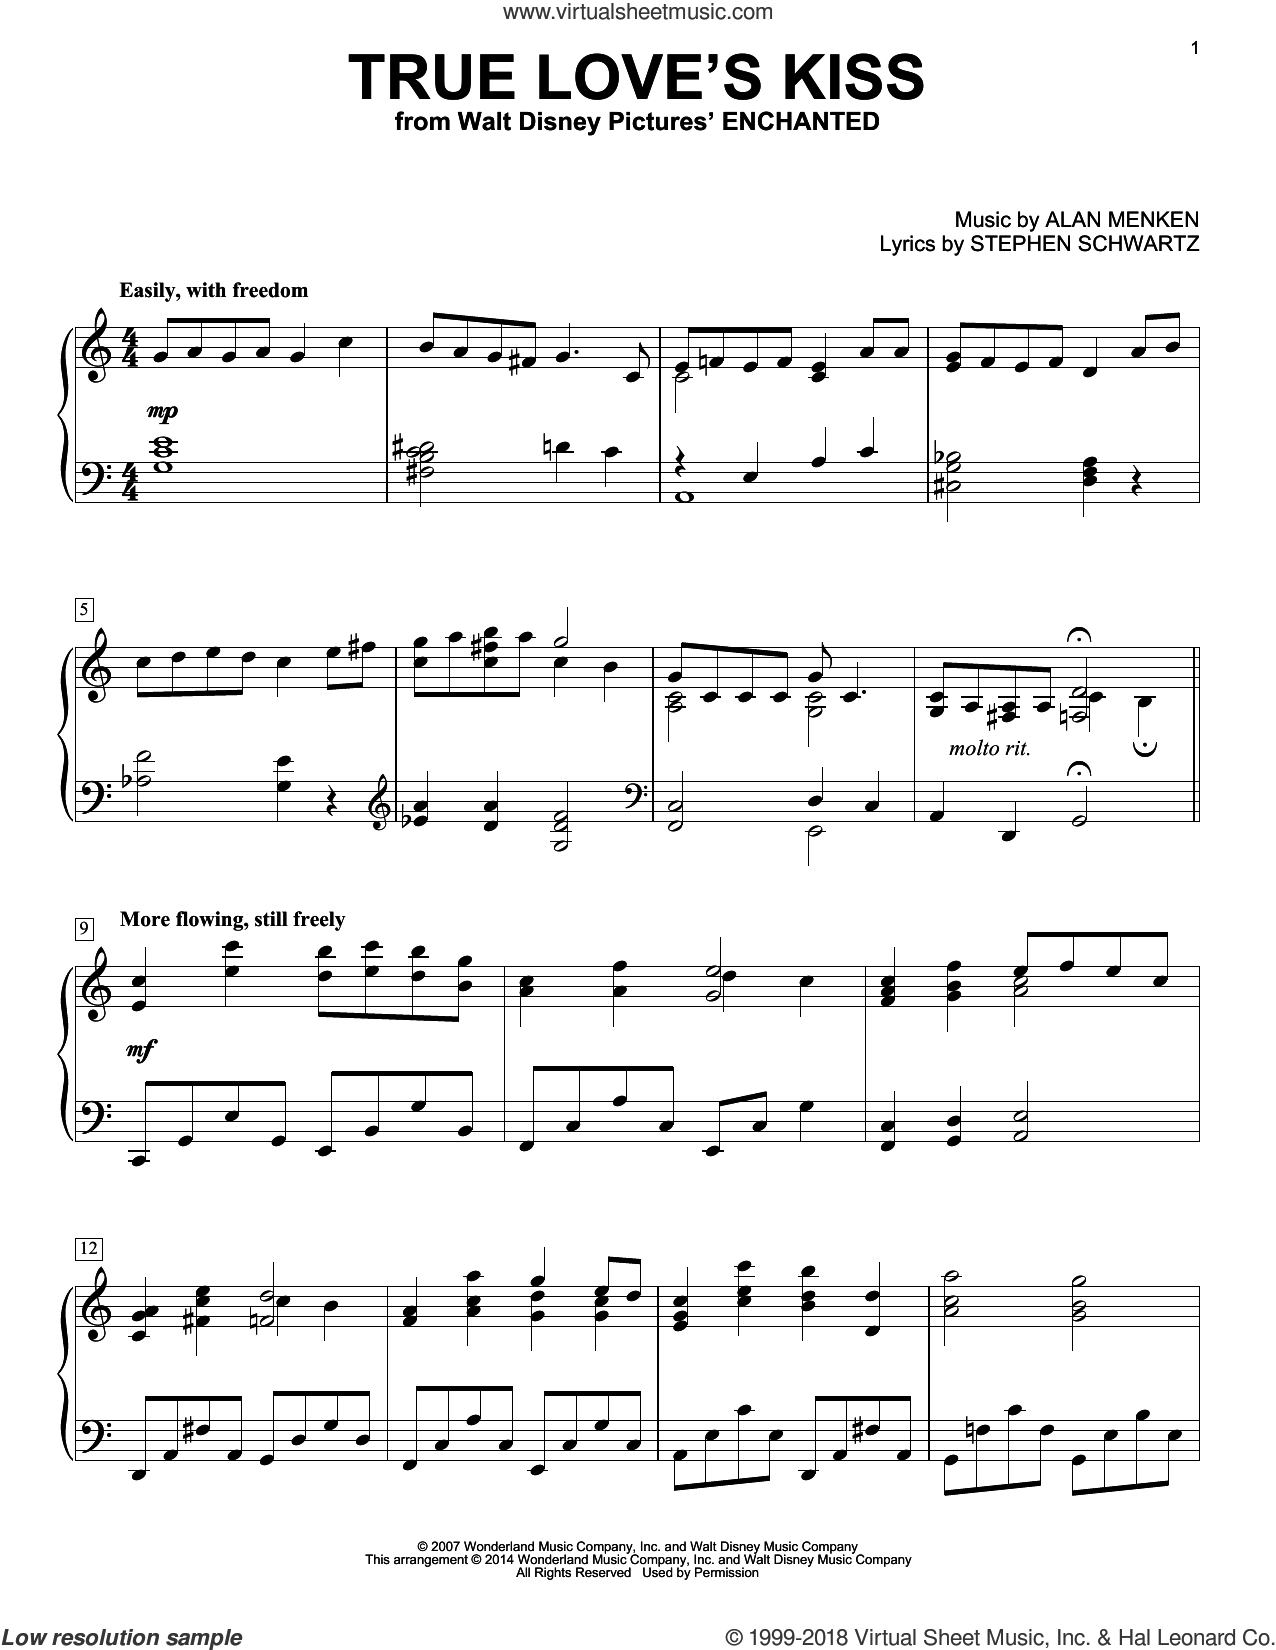 True Love's Kiss sheet music for piano solo by Alan Menken and Stephen Schwartz, intermediate skill level